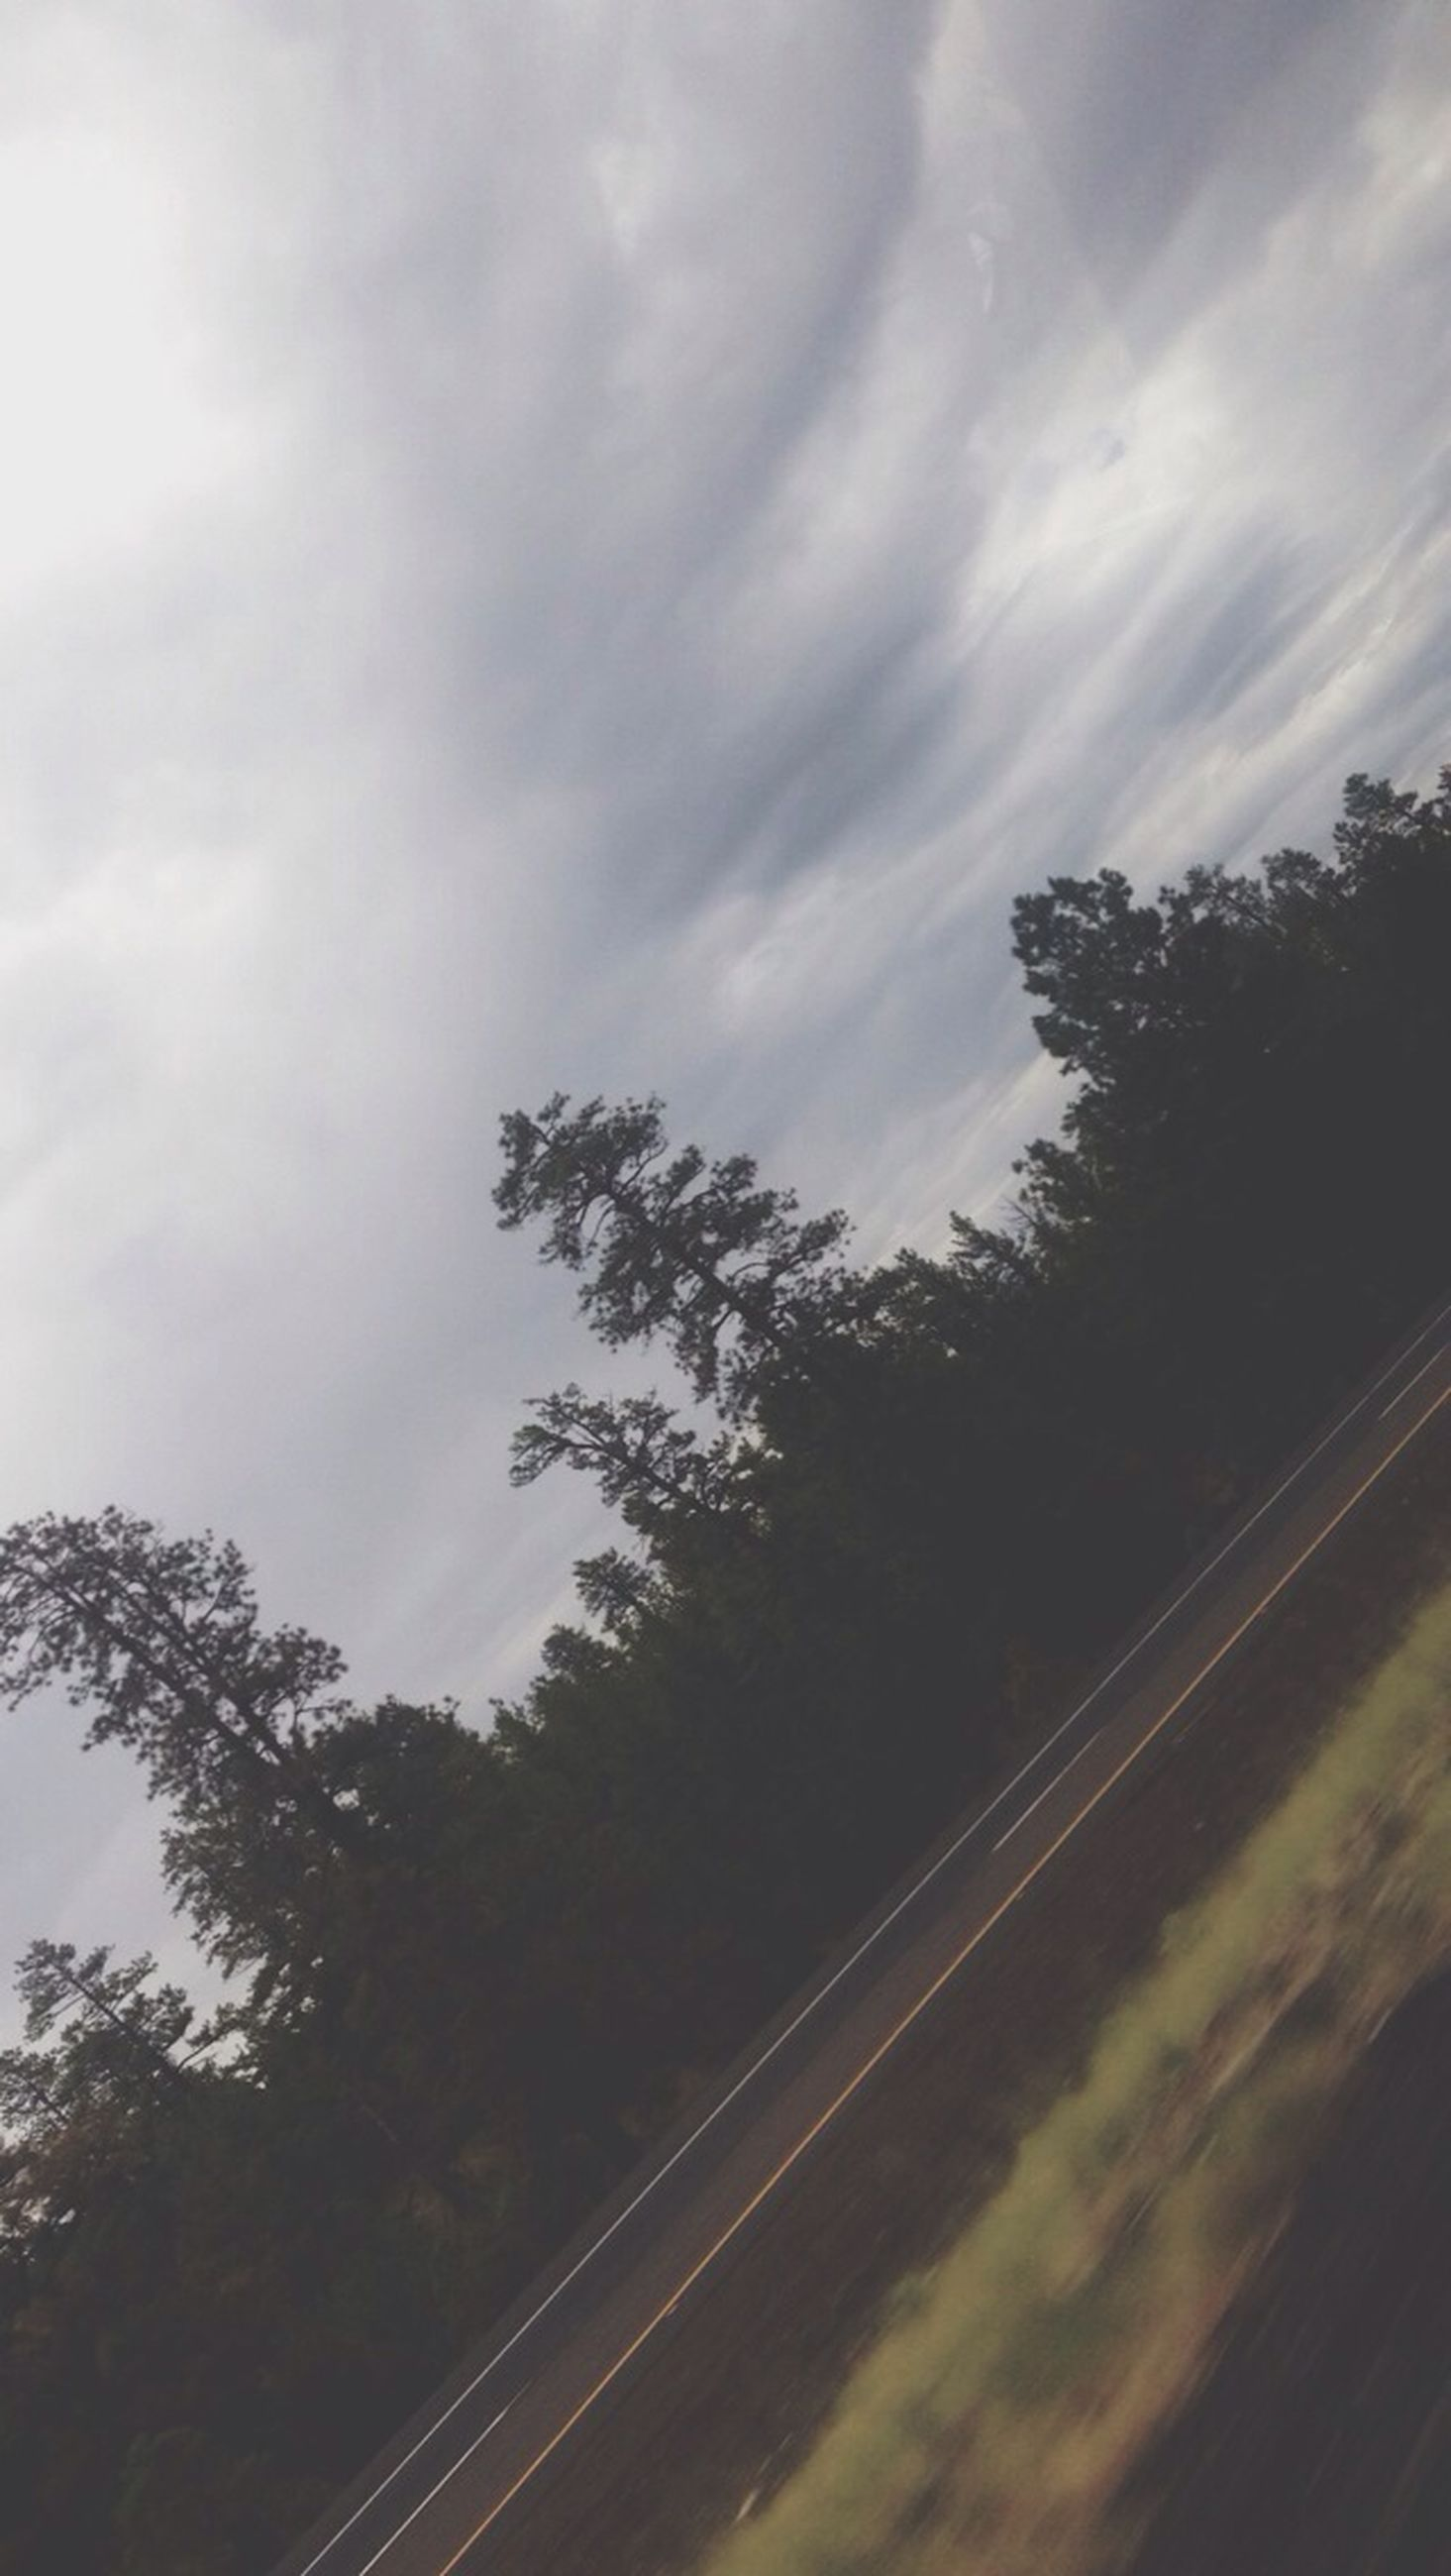 tree, sky, cloud - sky, cloudy, cloud, transportation, tranquility, low angle view, nature, the way forward, tranquil scene, road, beauty in nature, scenics, growth, outdoors, day, silhouette, no people, overcast